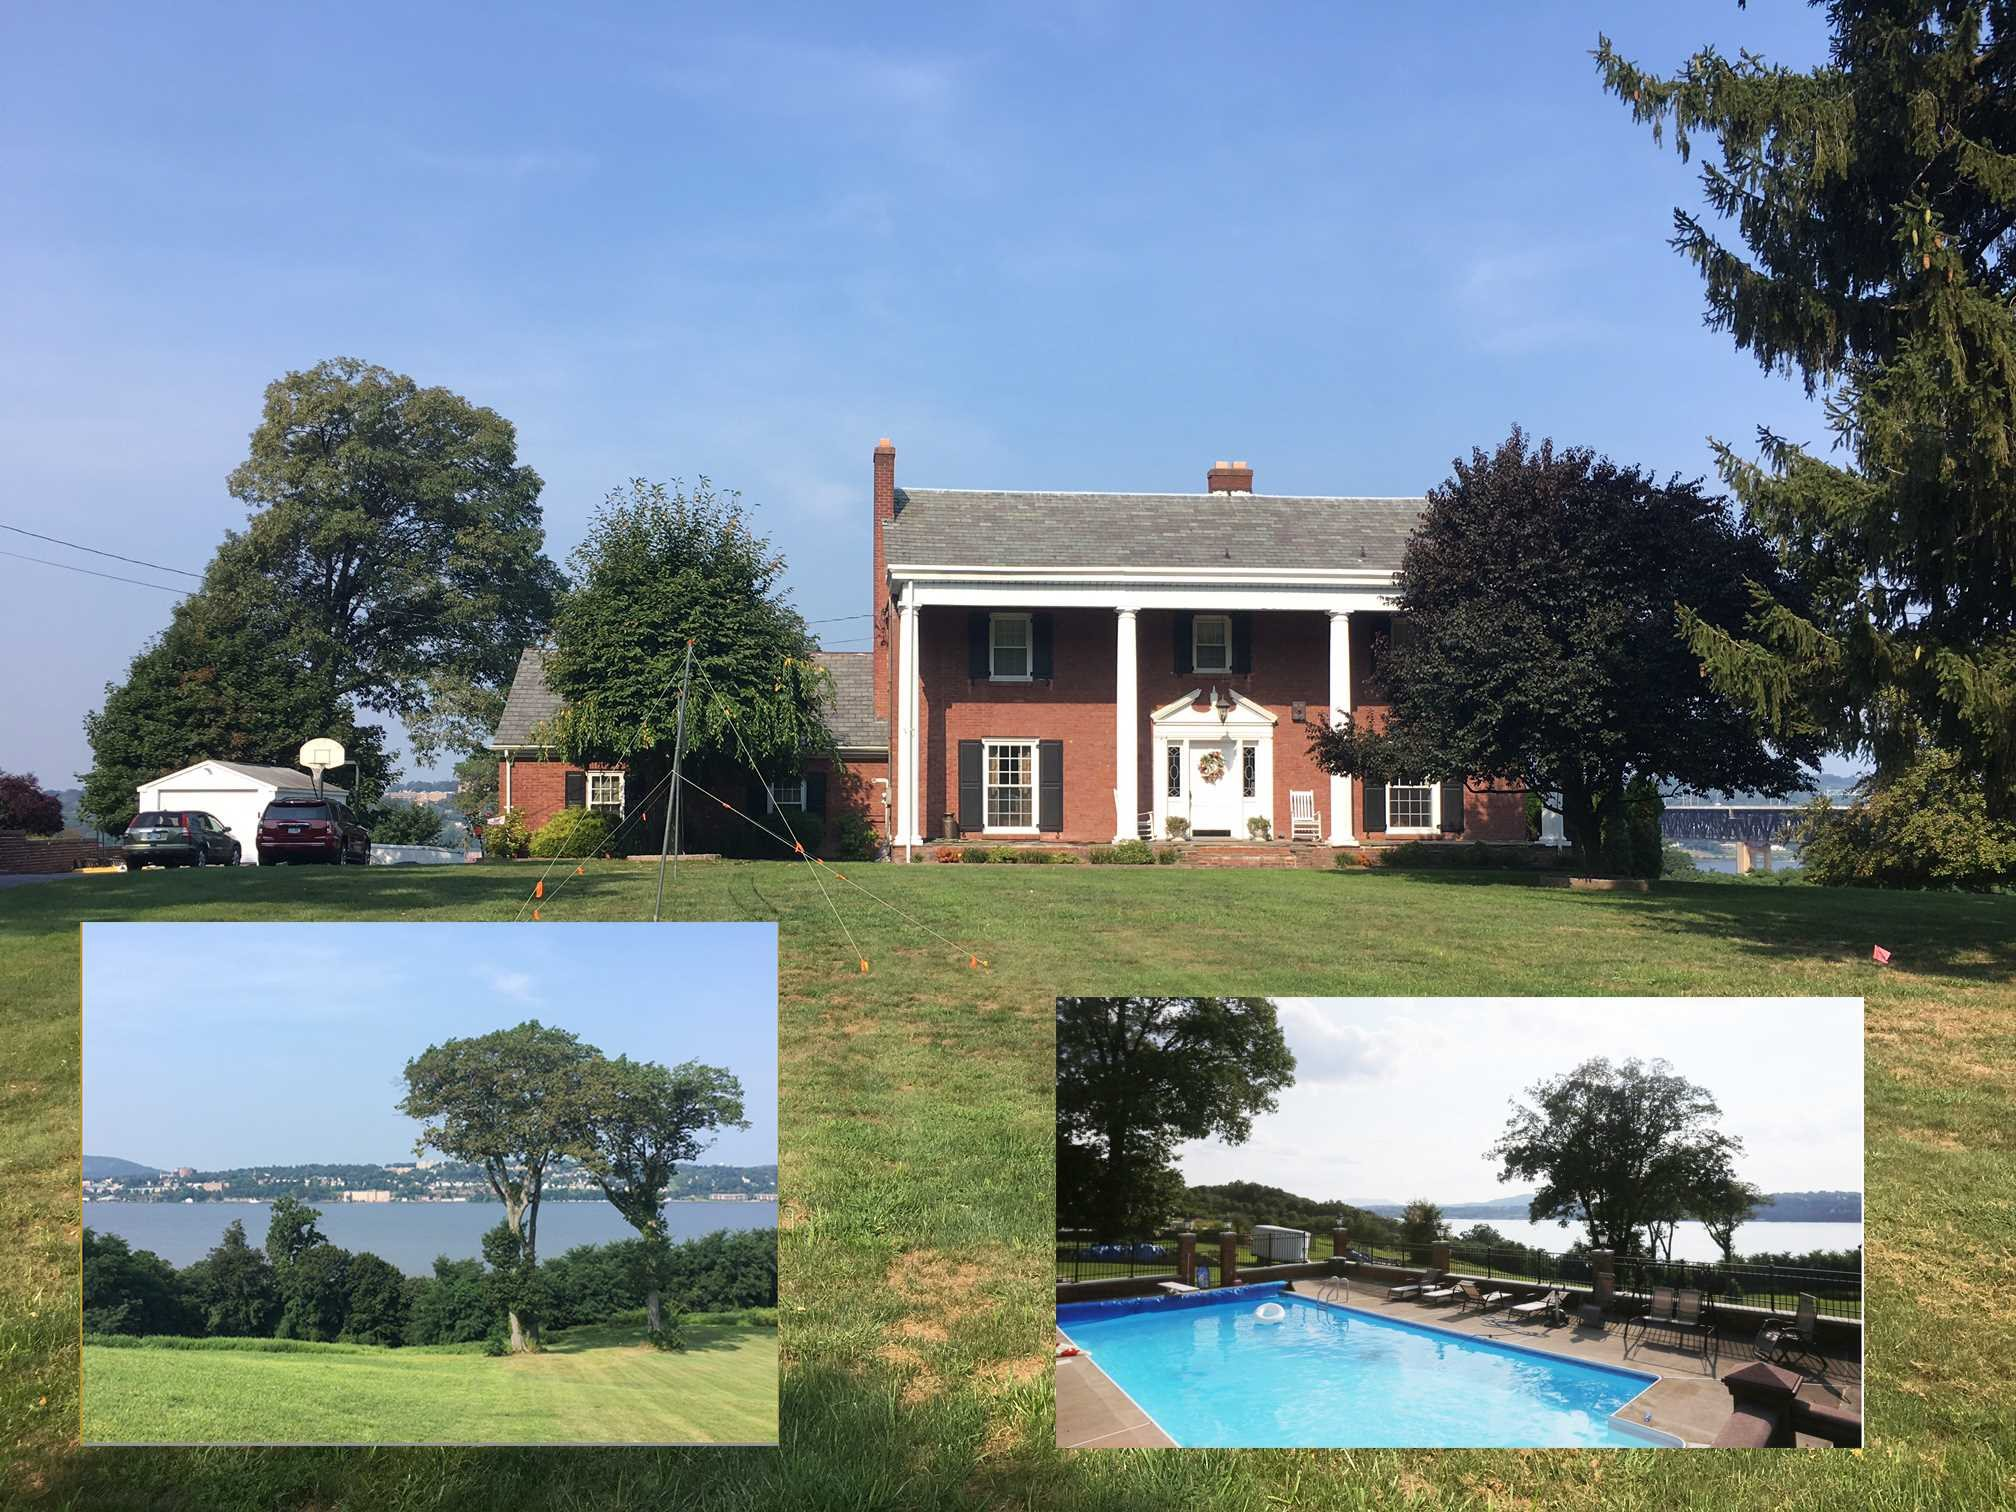 Single Family Home for Sale at 32 MONELL Place 32 MONELL Place Beacon, New York 12508 United States